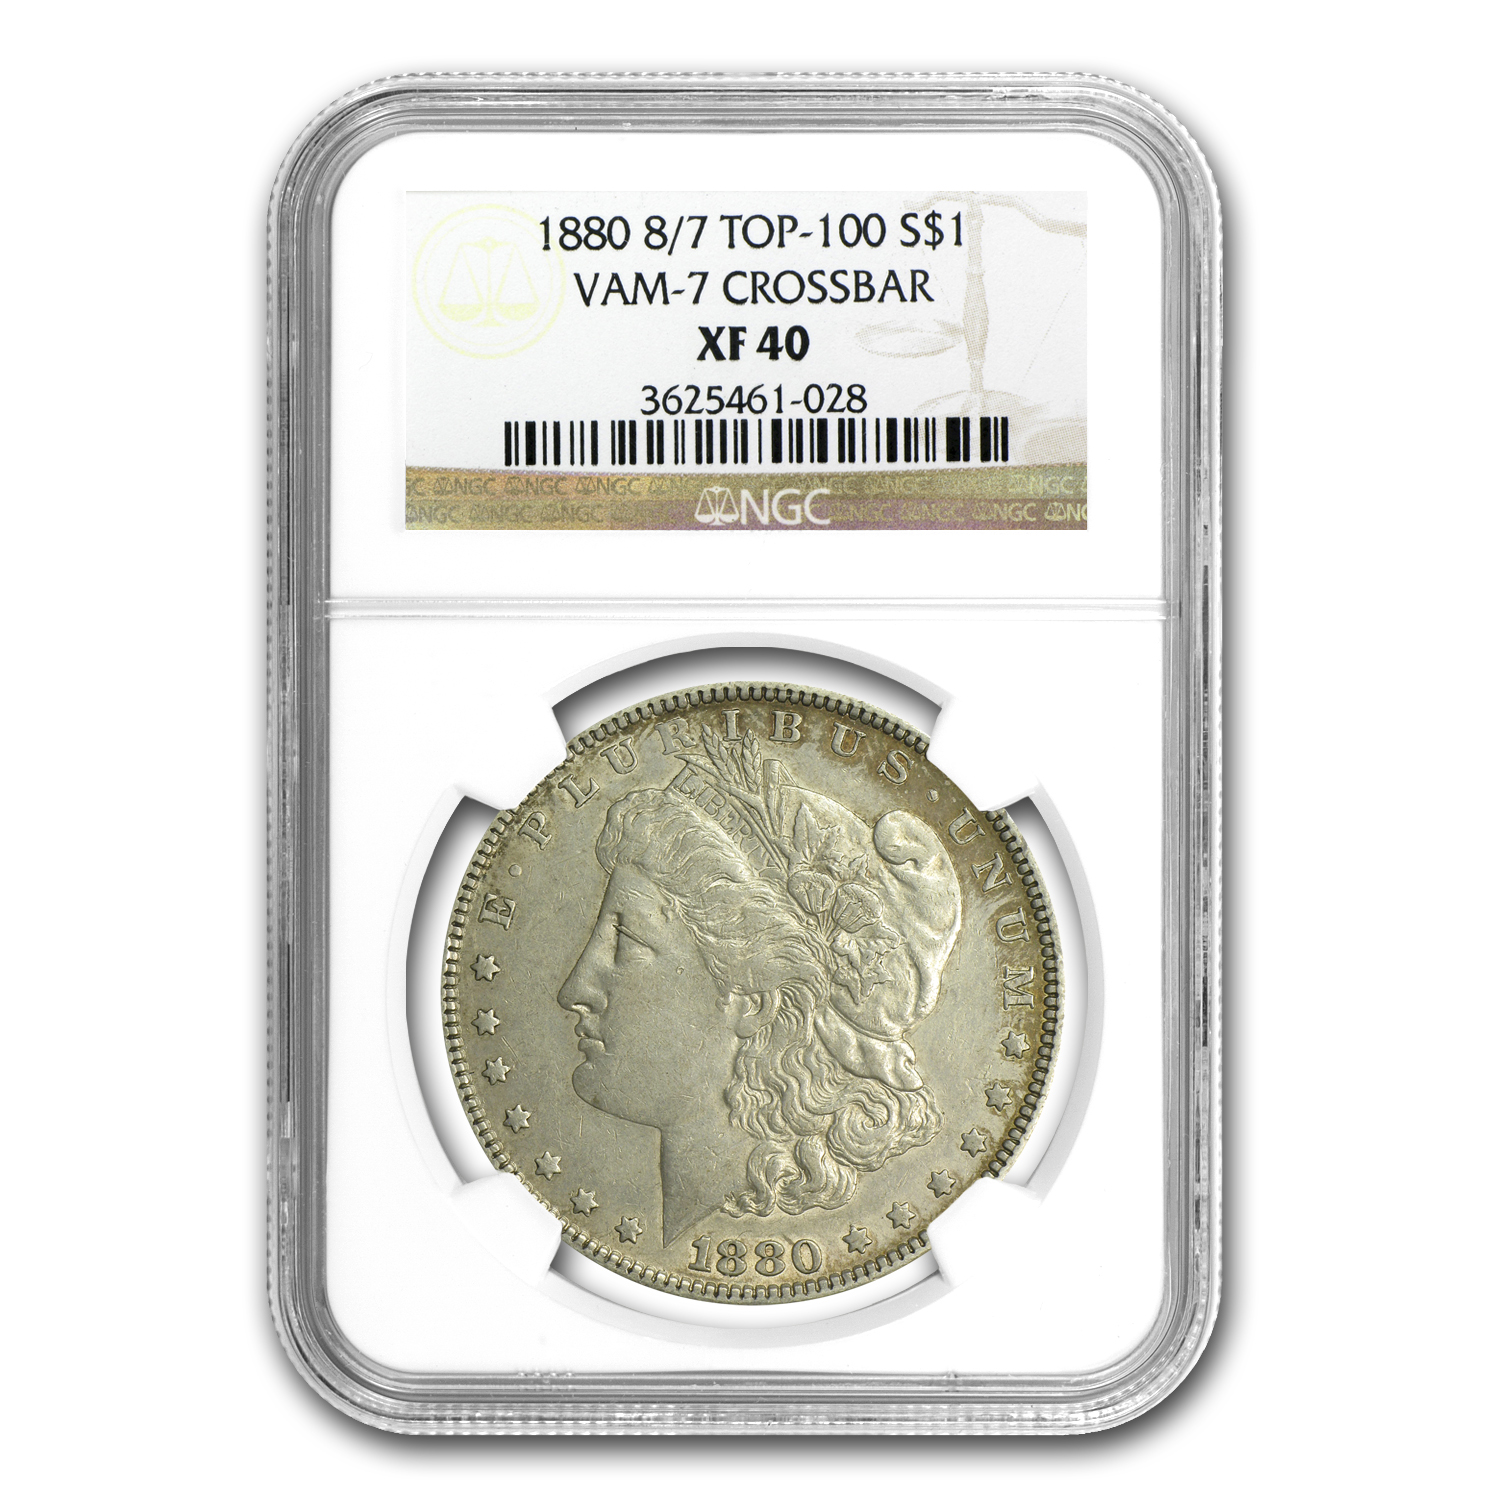 1880 Morgan Dollar XF-40 NGC (VAM-7, 8 over 7 Crossbar)